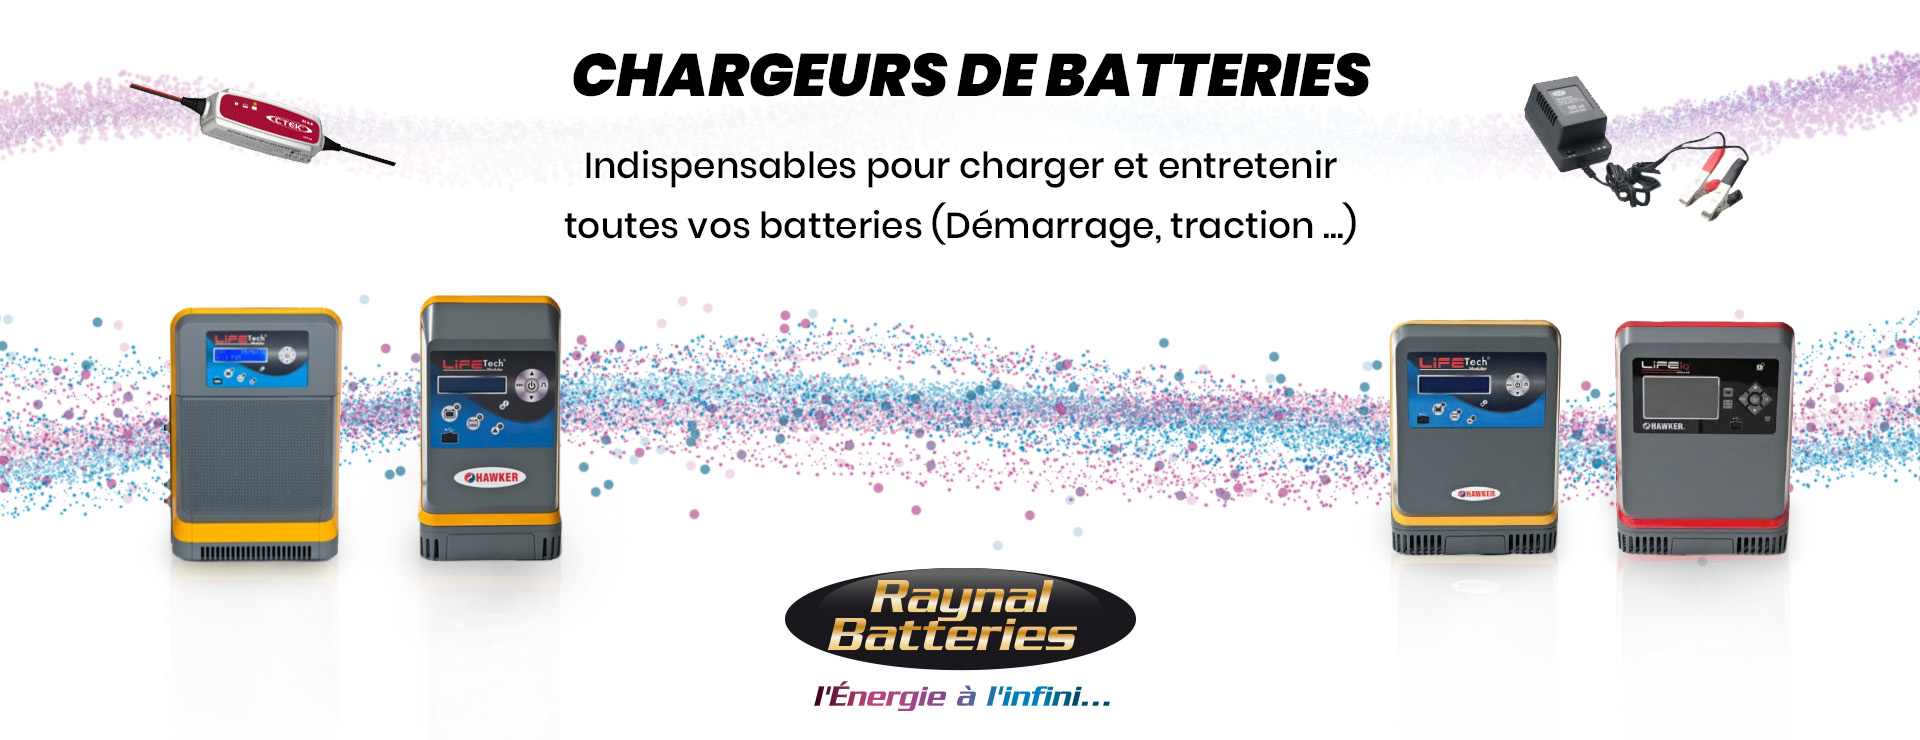 Batteries chargeurs